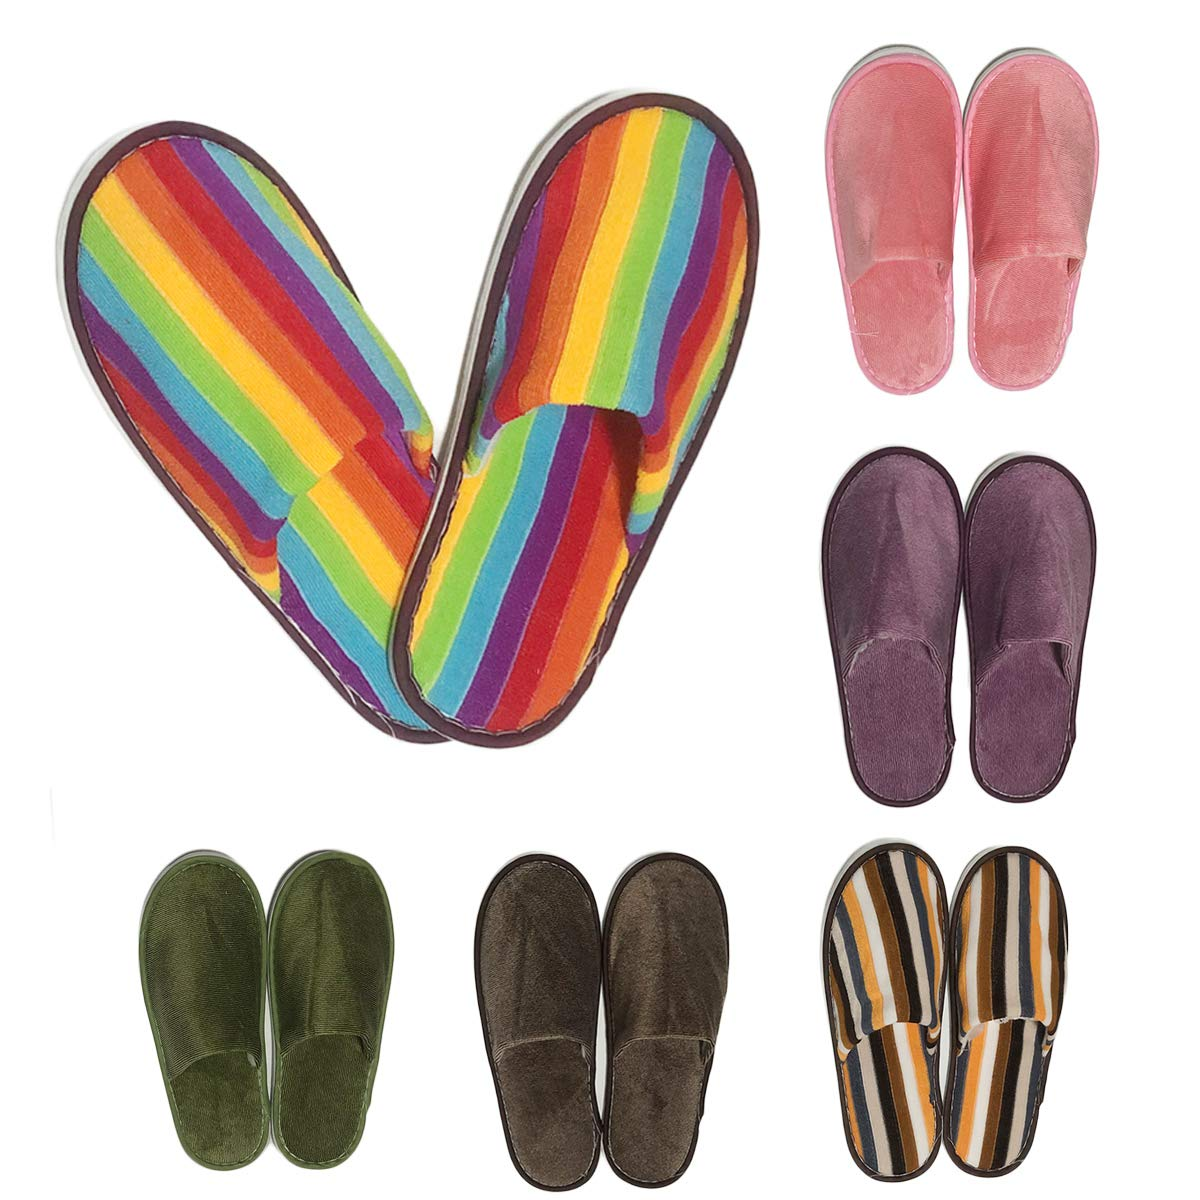 AllBeauty Spa Slippers, 6 Pairs 6 Colors Rainbow Slippers House Indoor Slippers Closed Toe Hotel Spa Slippers for Women and Man Non-Slip Slippers for Hotel, Home, Guest Use (6 Colors/6 Pairs) by AllBeauty